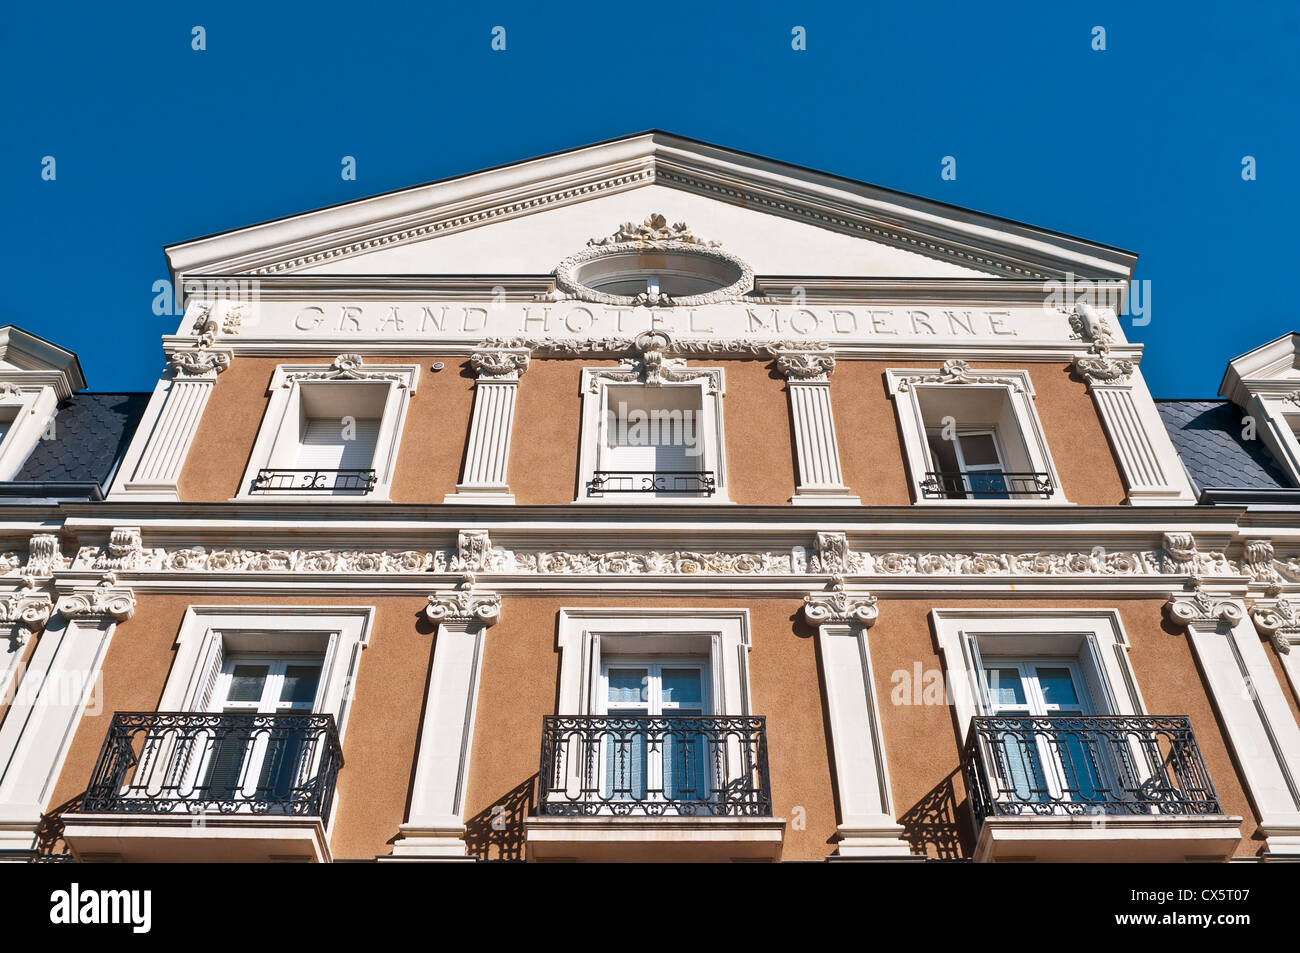 'Grand Hotel Moderne' classical architectural building - France. - Stock Image